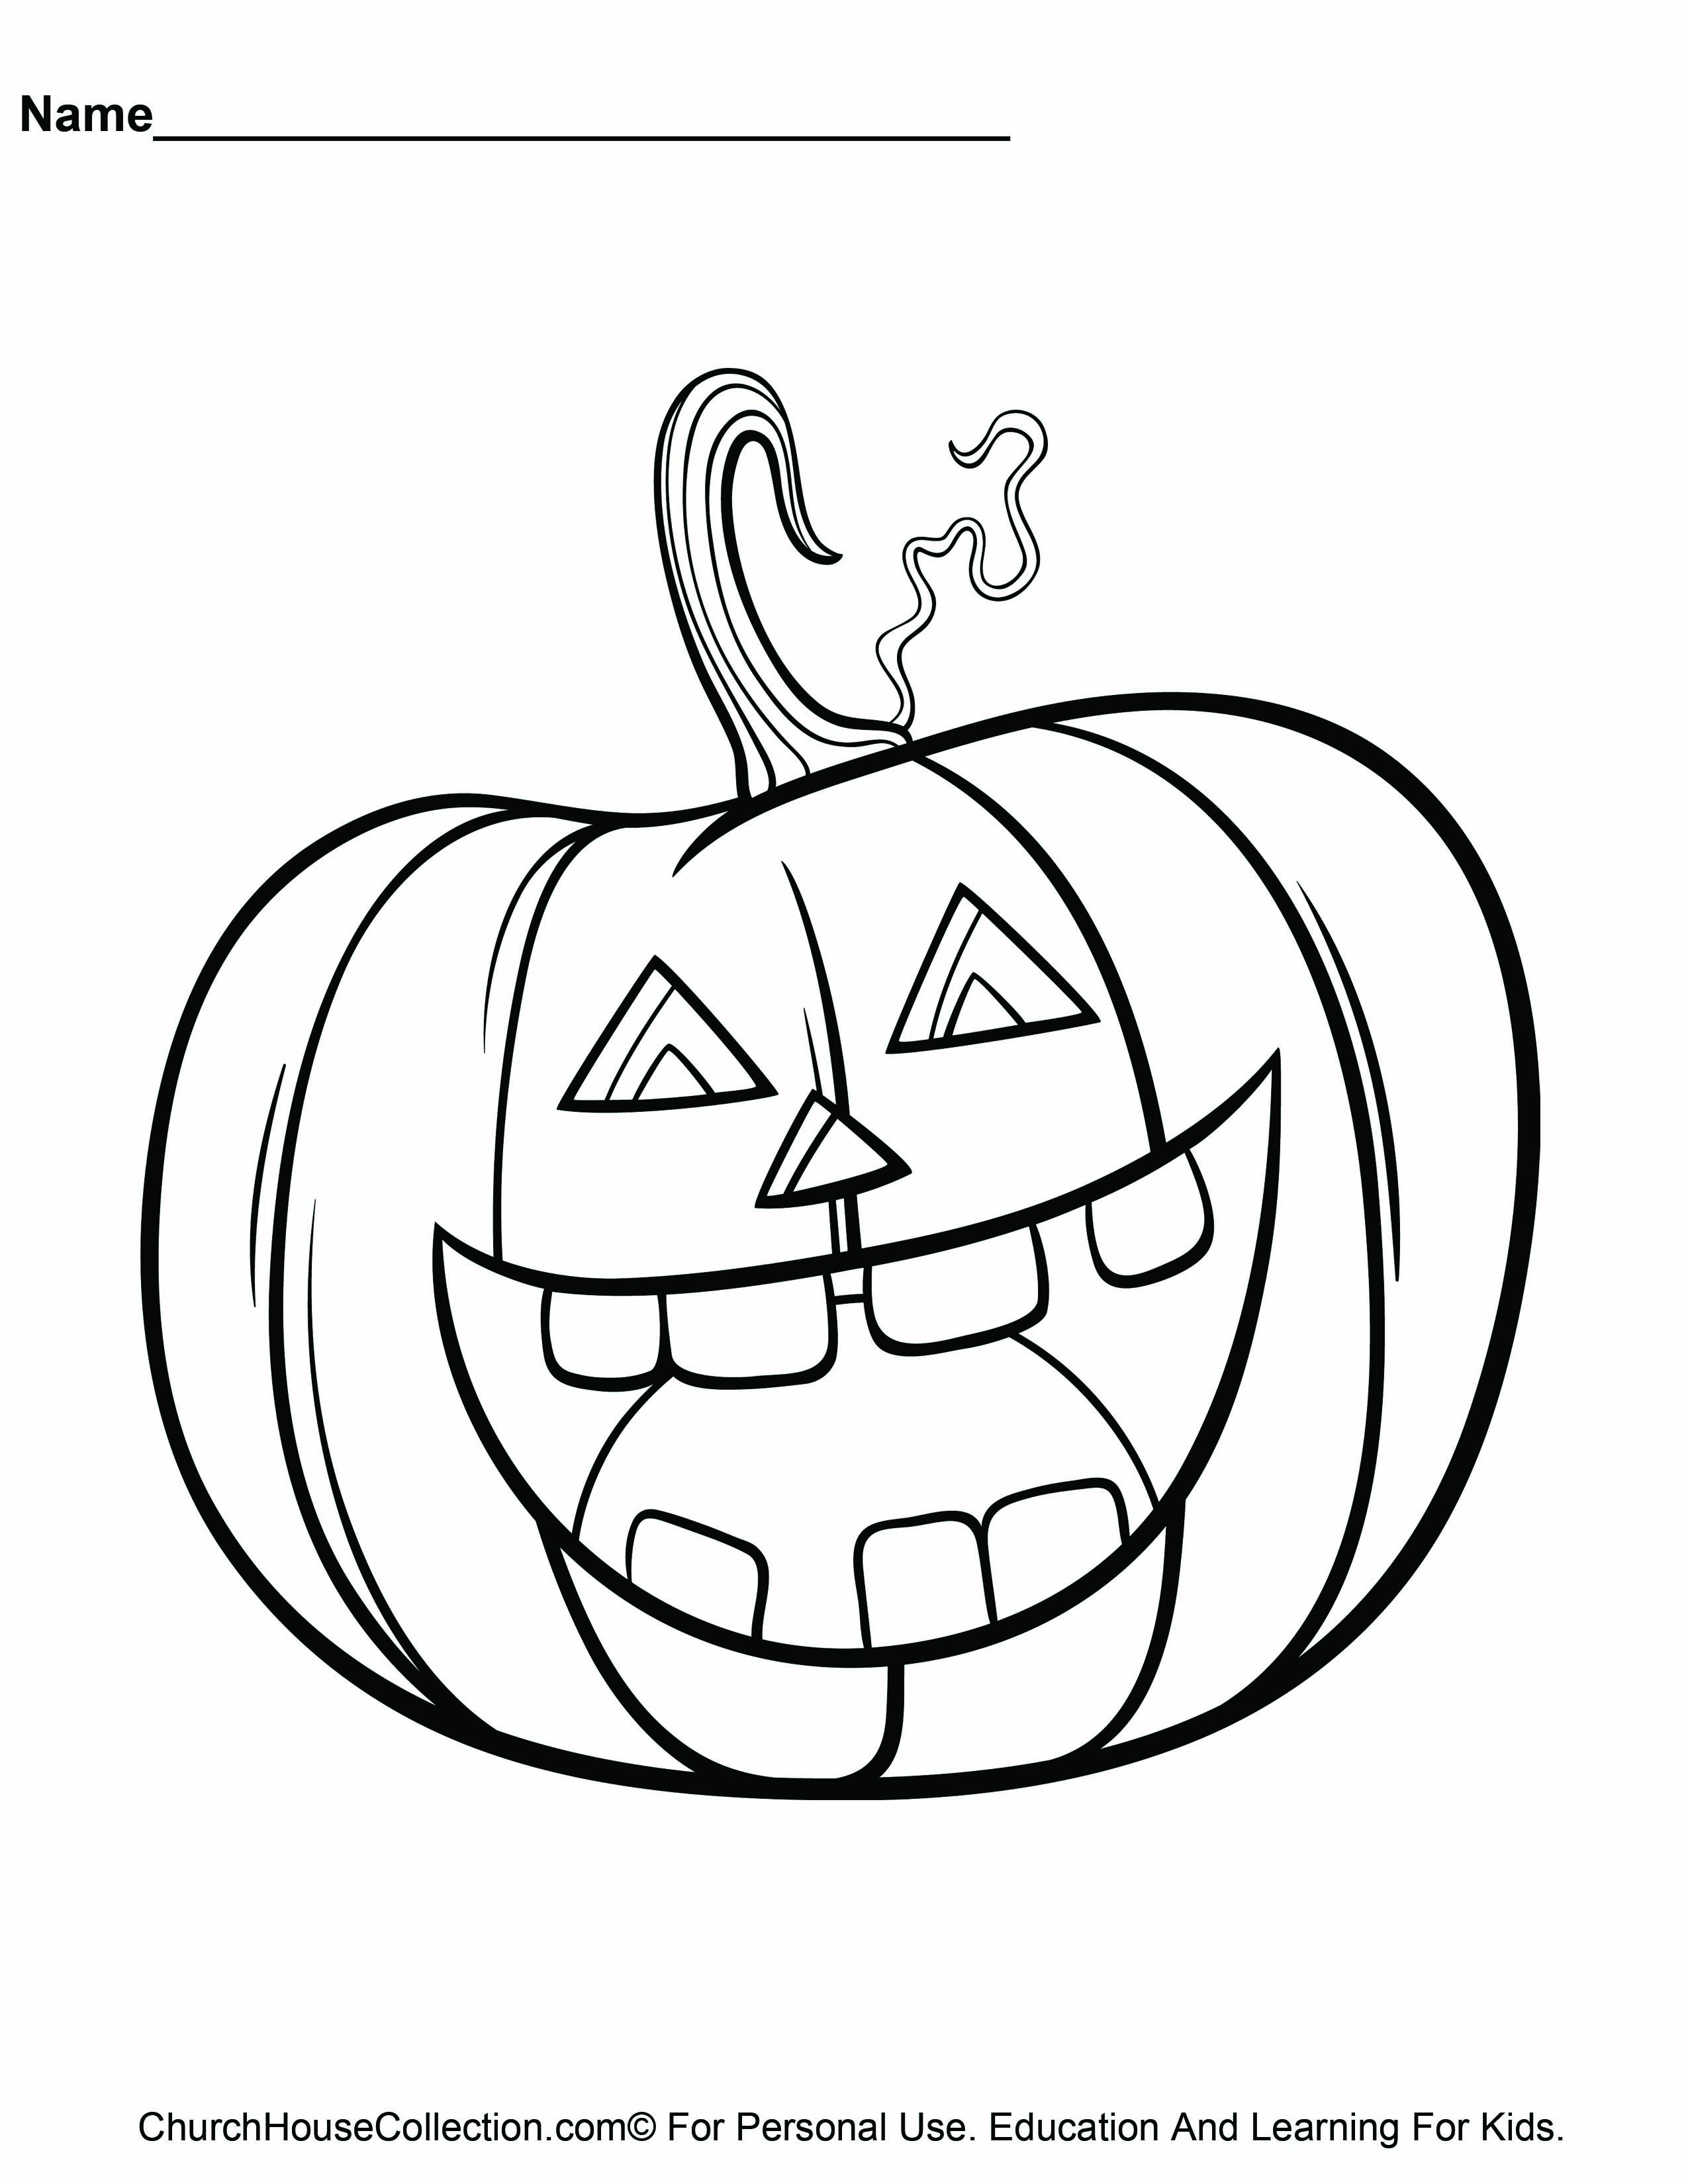 christian fall festival coloring pages - photo#3